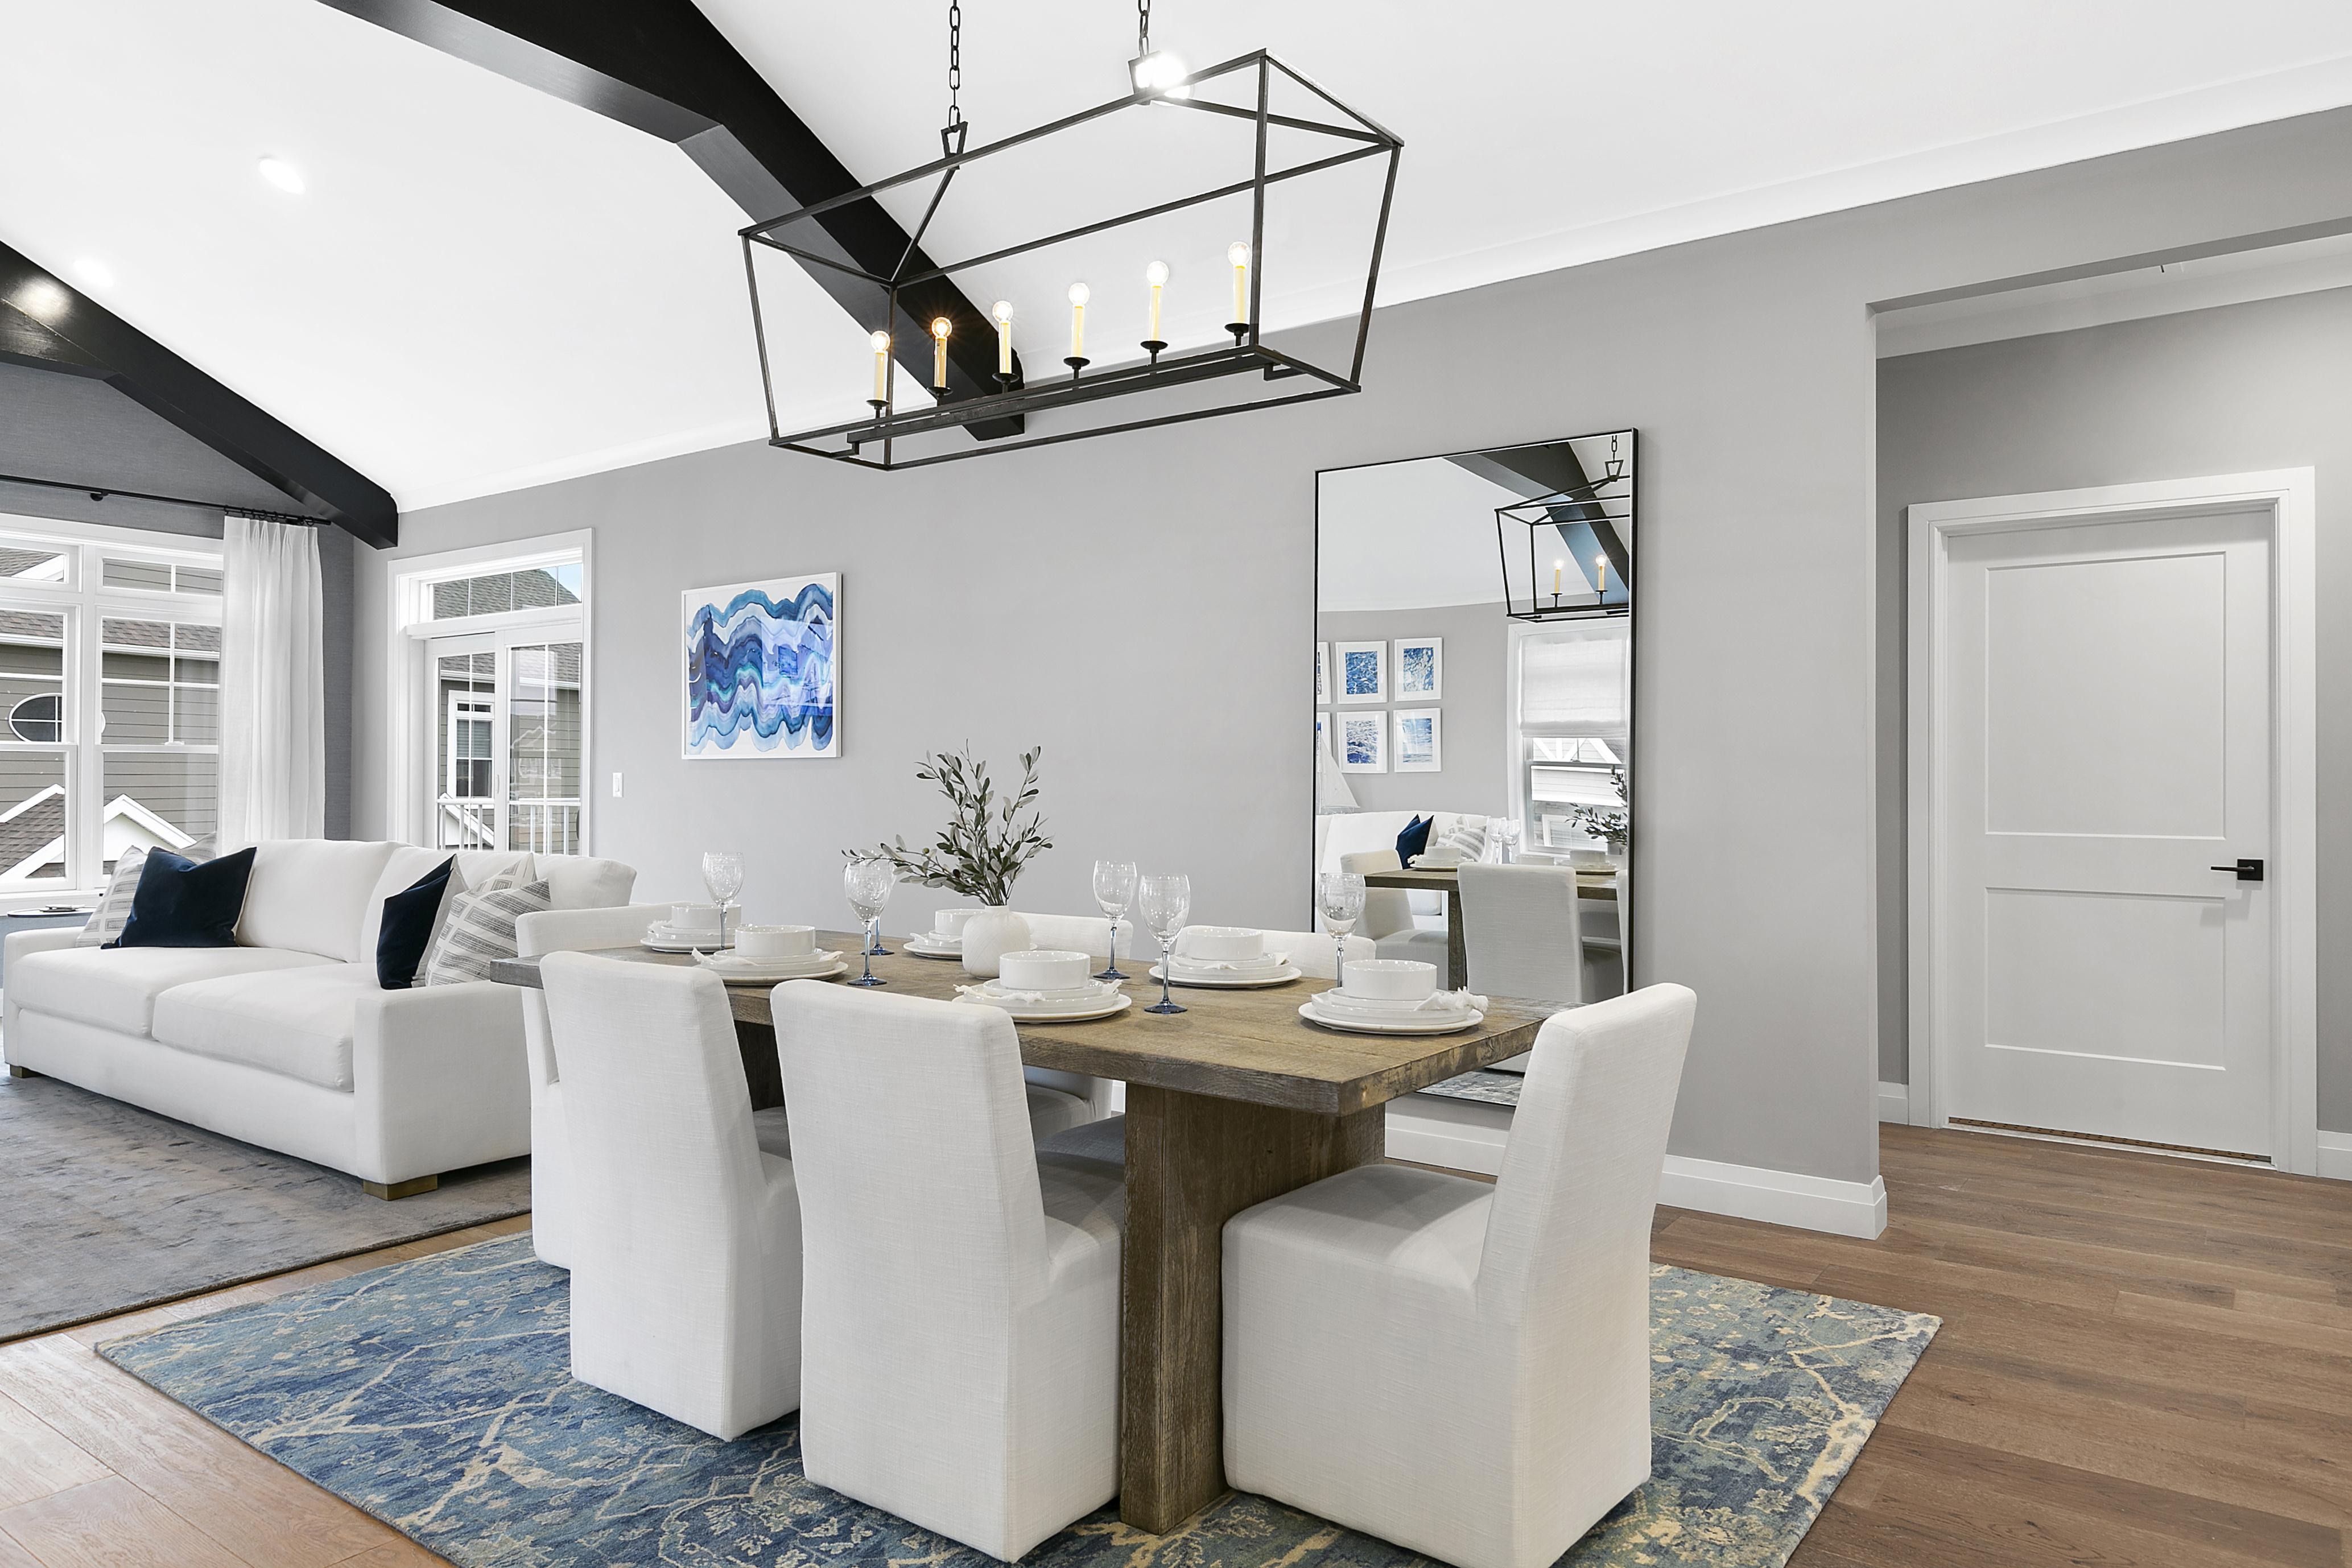 Living Area featured in the Greenbrier By Beechwood Homes in Nassau-Suffolk, NY